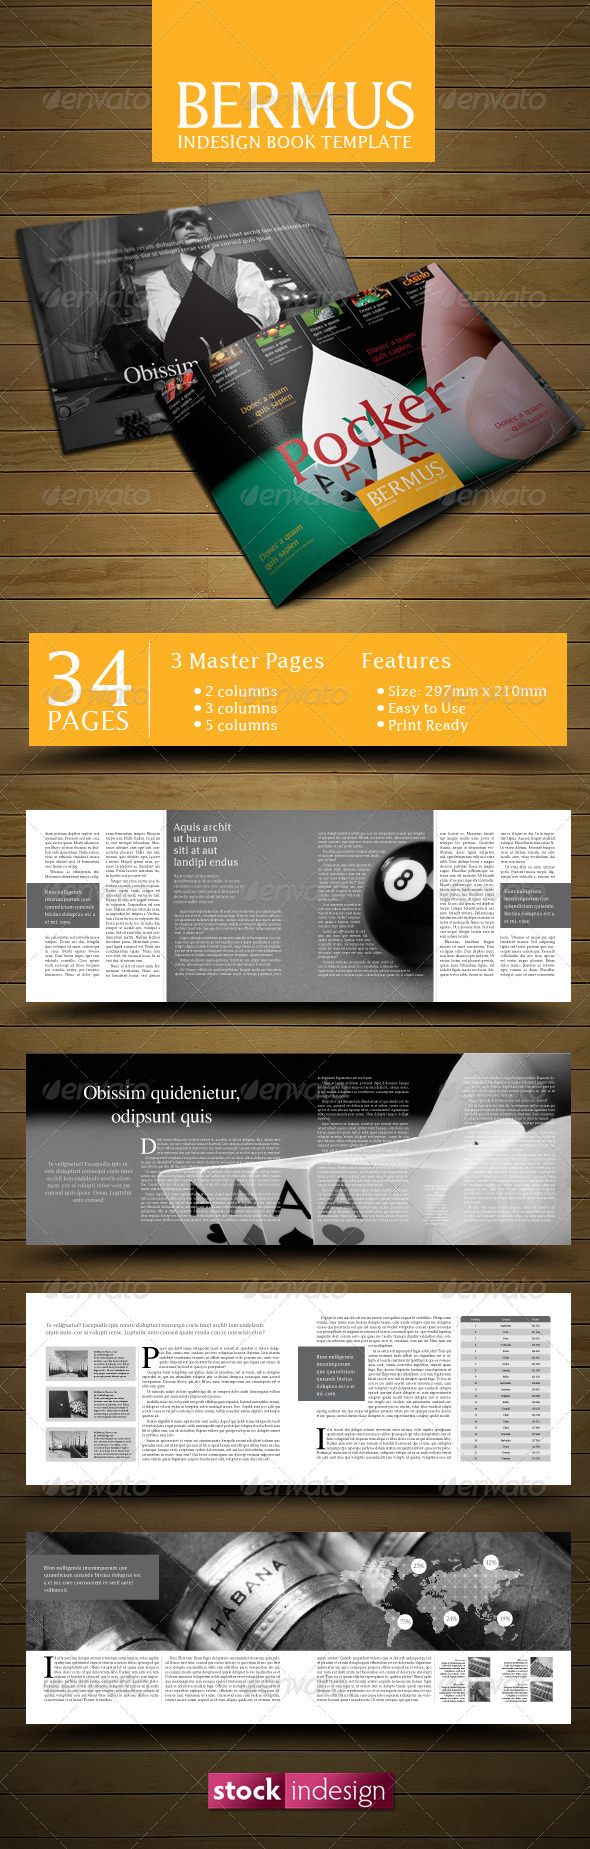 Indesign Book Template Bermus Graphicriver